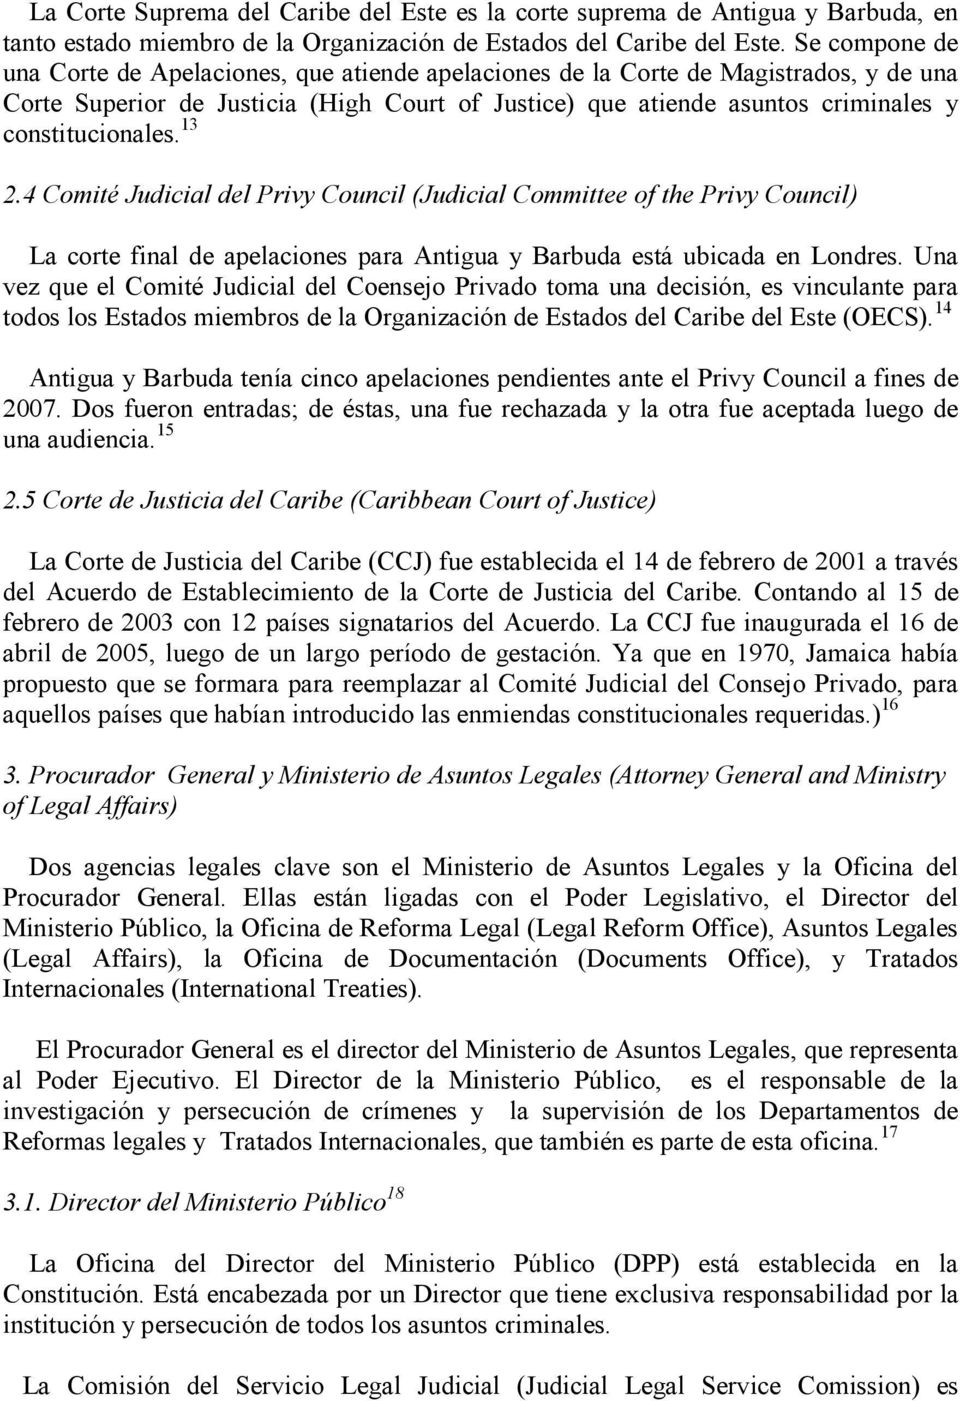 constitucionales. 13 2.4 Comité Judicial del Privy Council (Judicial Committee of the Privy Council) La corte final de apelaciones para Antigua y Barbuda está ubicada en Londres.